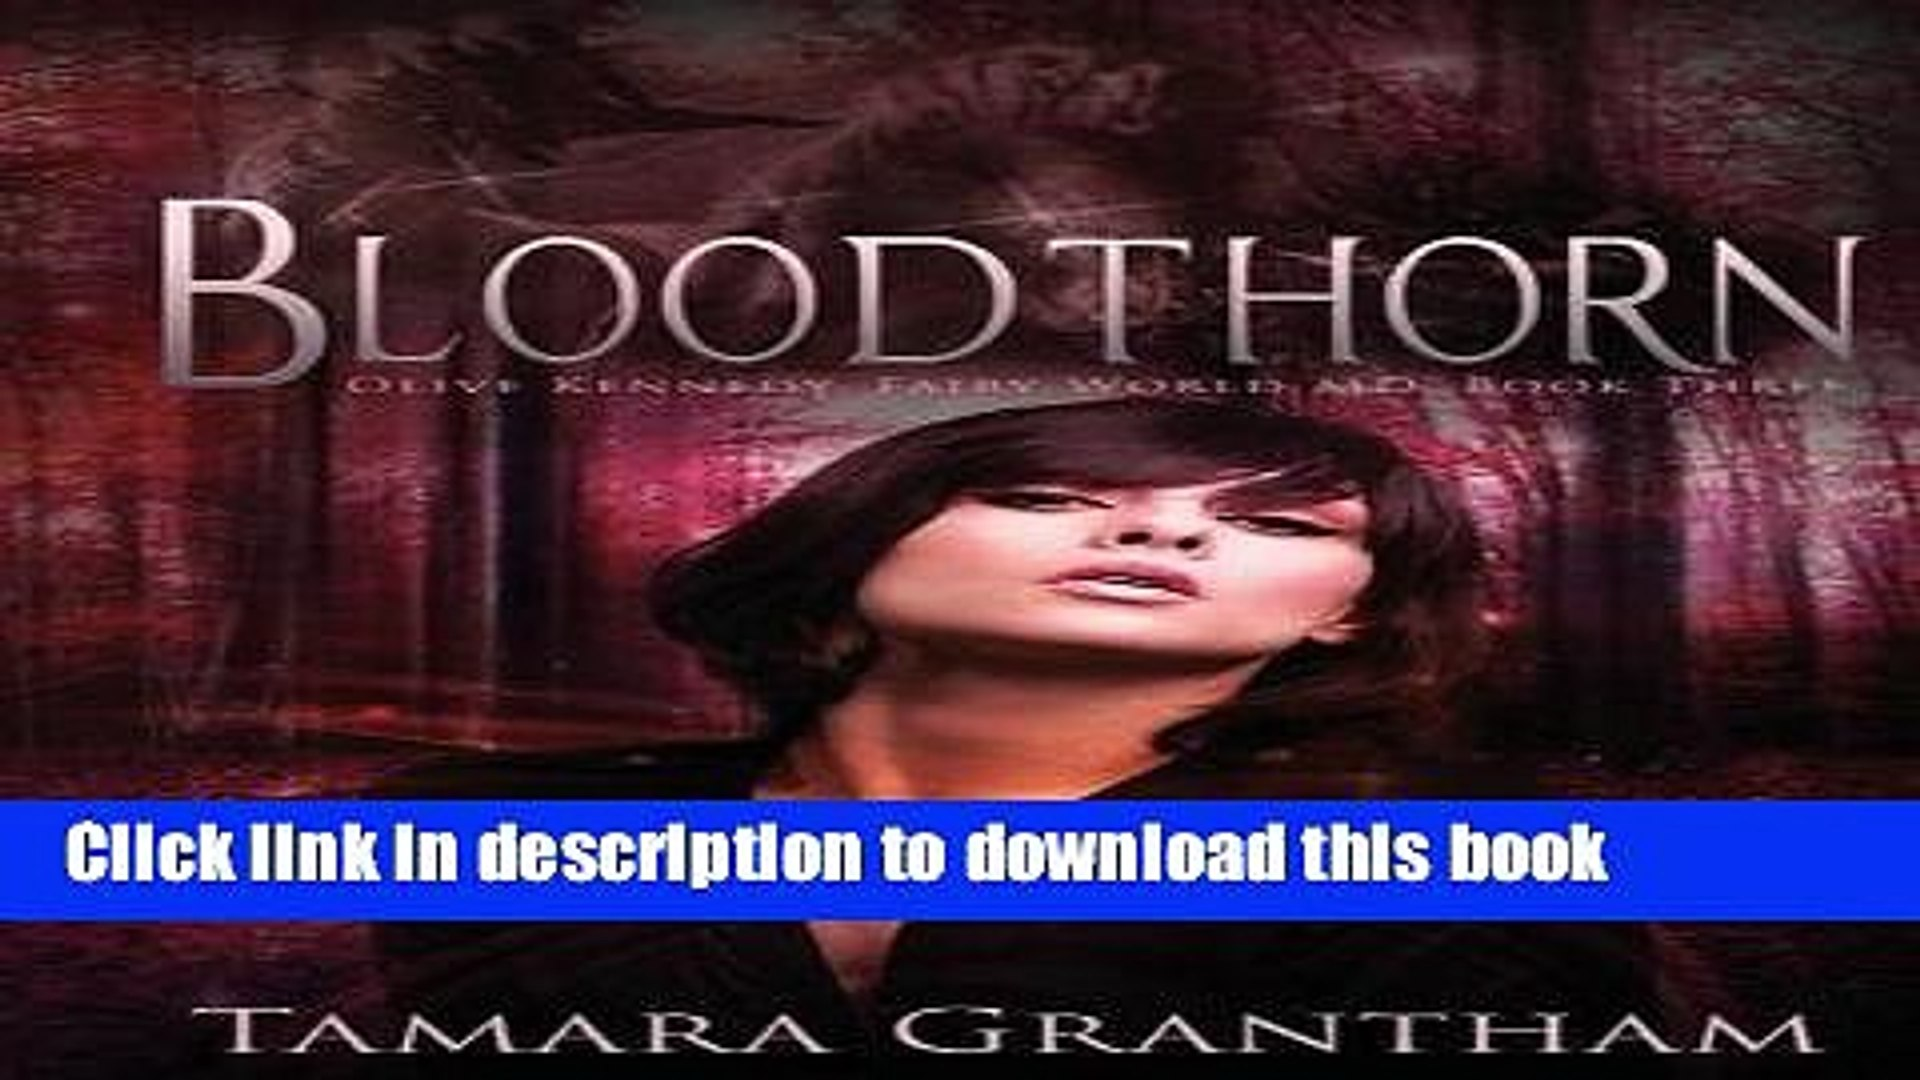 Read Bloodthorn: Olive Kennedy (Fairy World MD) Ebook Free